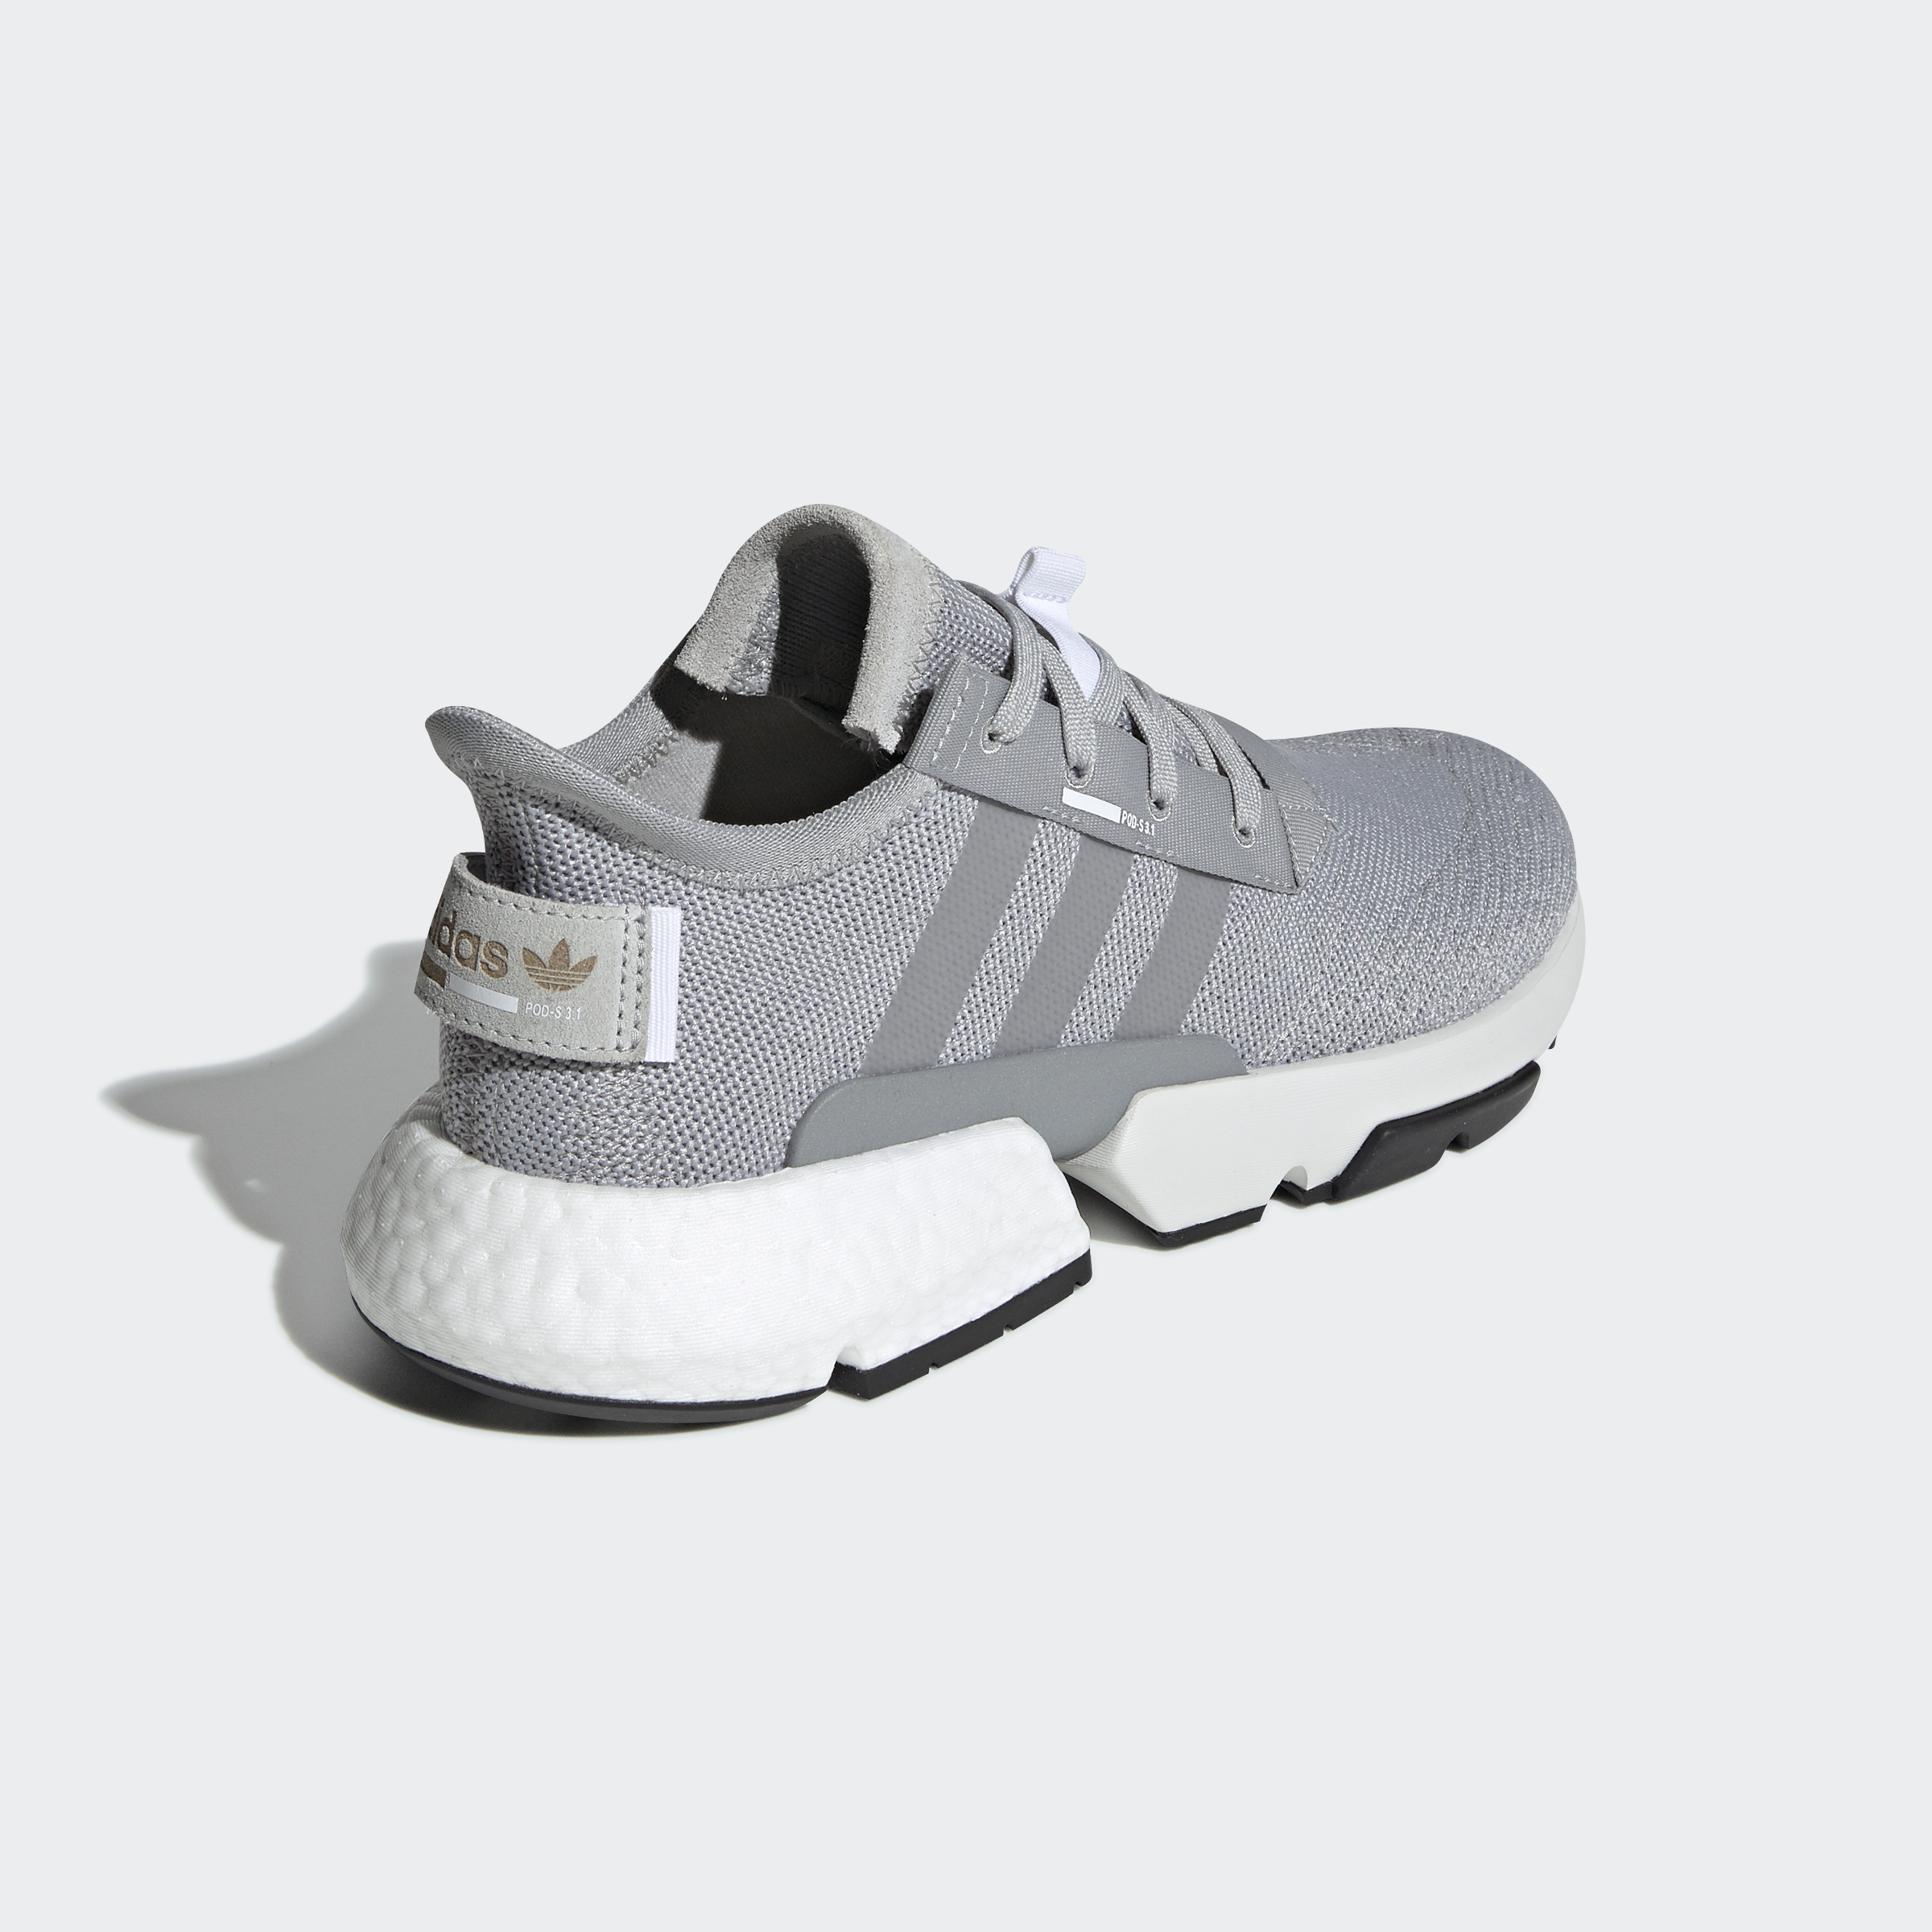 adidas-POD-S3-1-Shoes-Men-039-s-Athletic-amp-Sneakers miniature 12